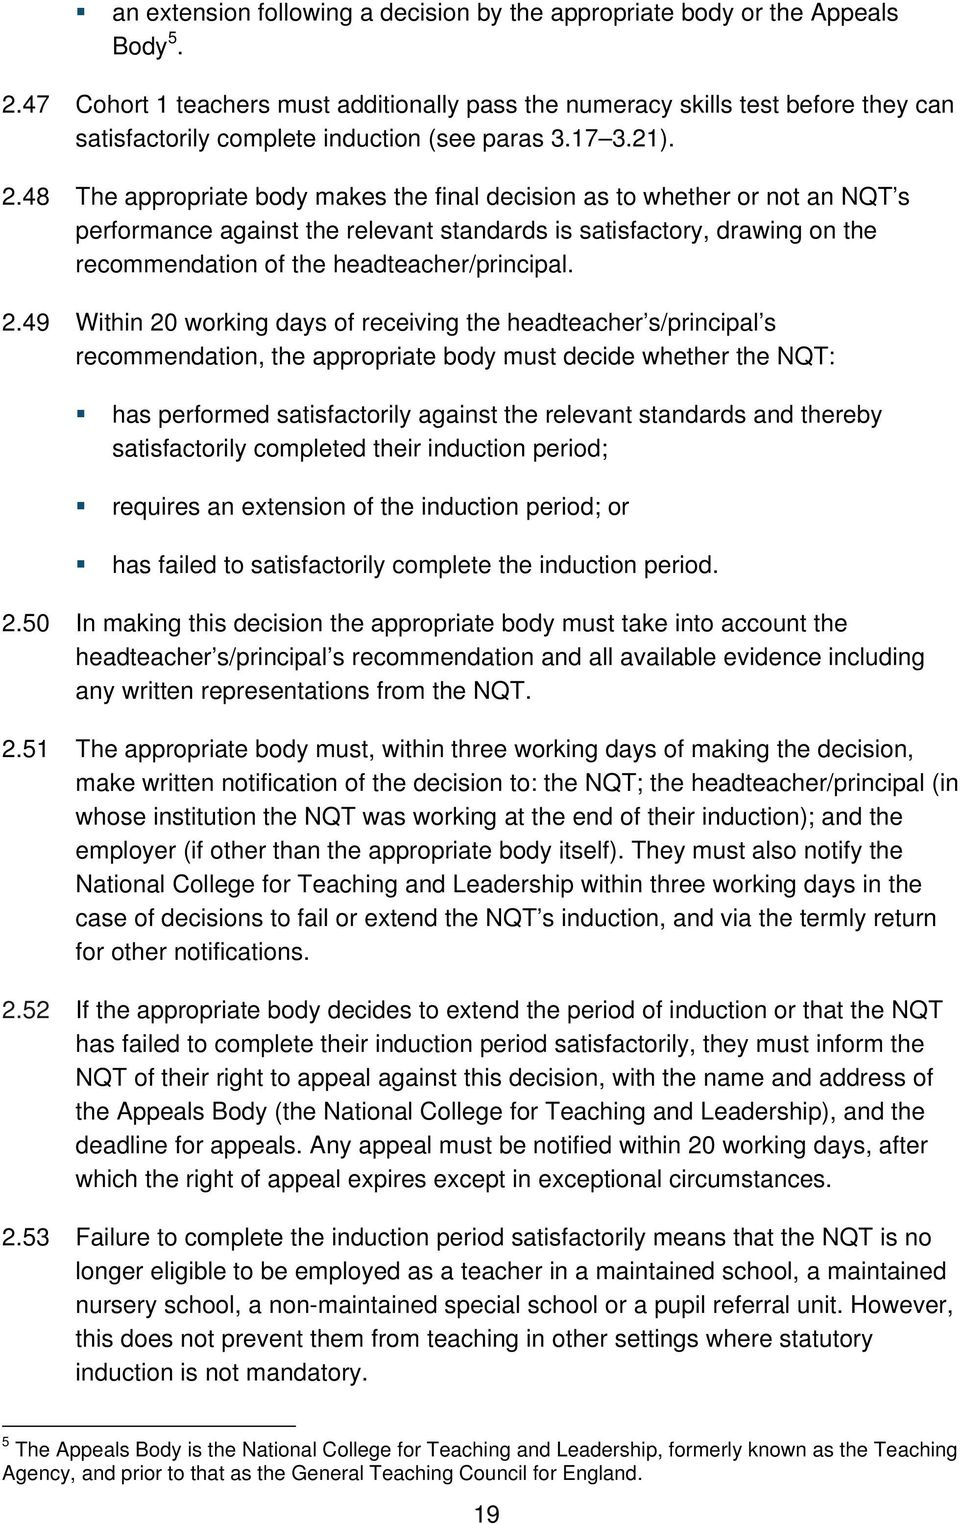 48 The appropriate body makes the final decision as to whether or not an NQT s performance against the relevant standards is satisfactory, drawing on the recommendation of the headteacher/principal.